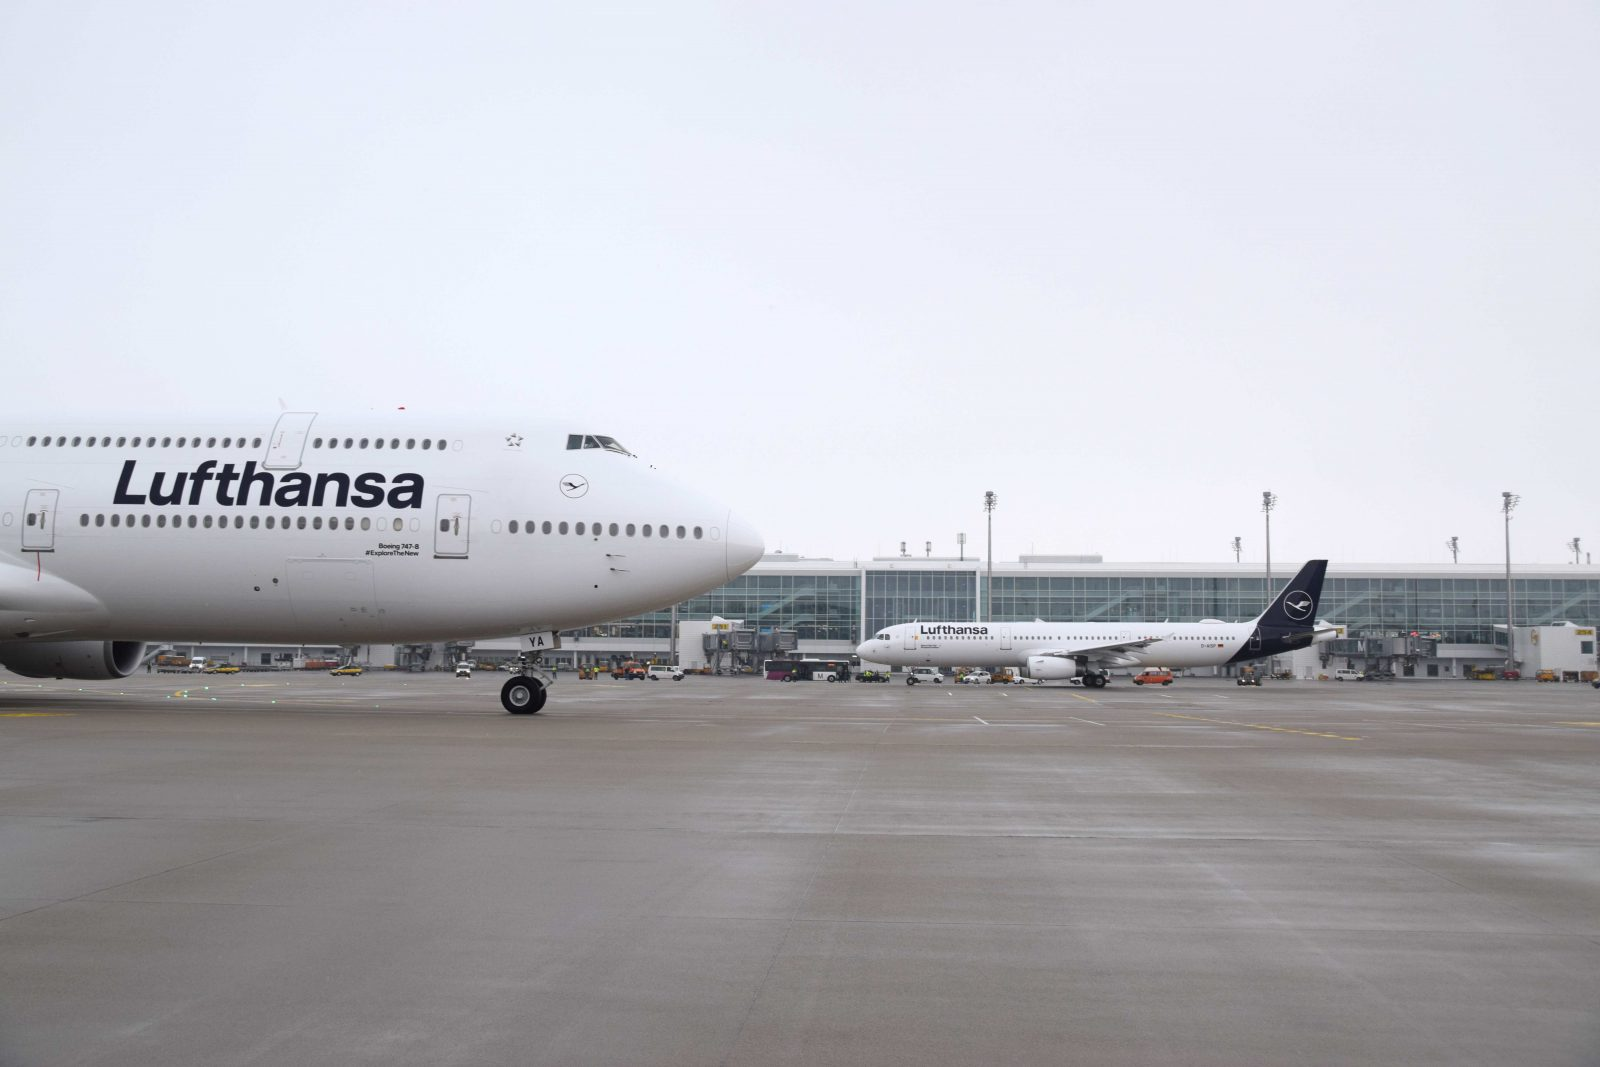 Lufthansa Will Be Forced To Cancel 800 Flights On Tuesday: 90,000 Passengers Will Be Impacted